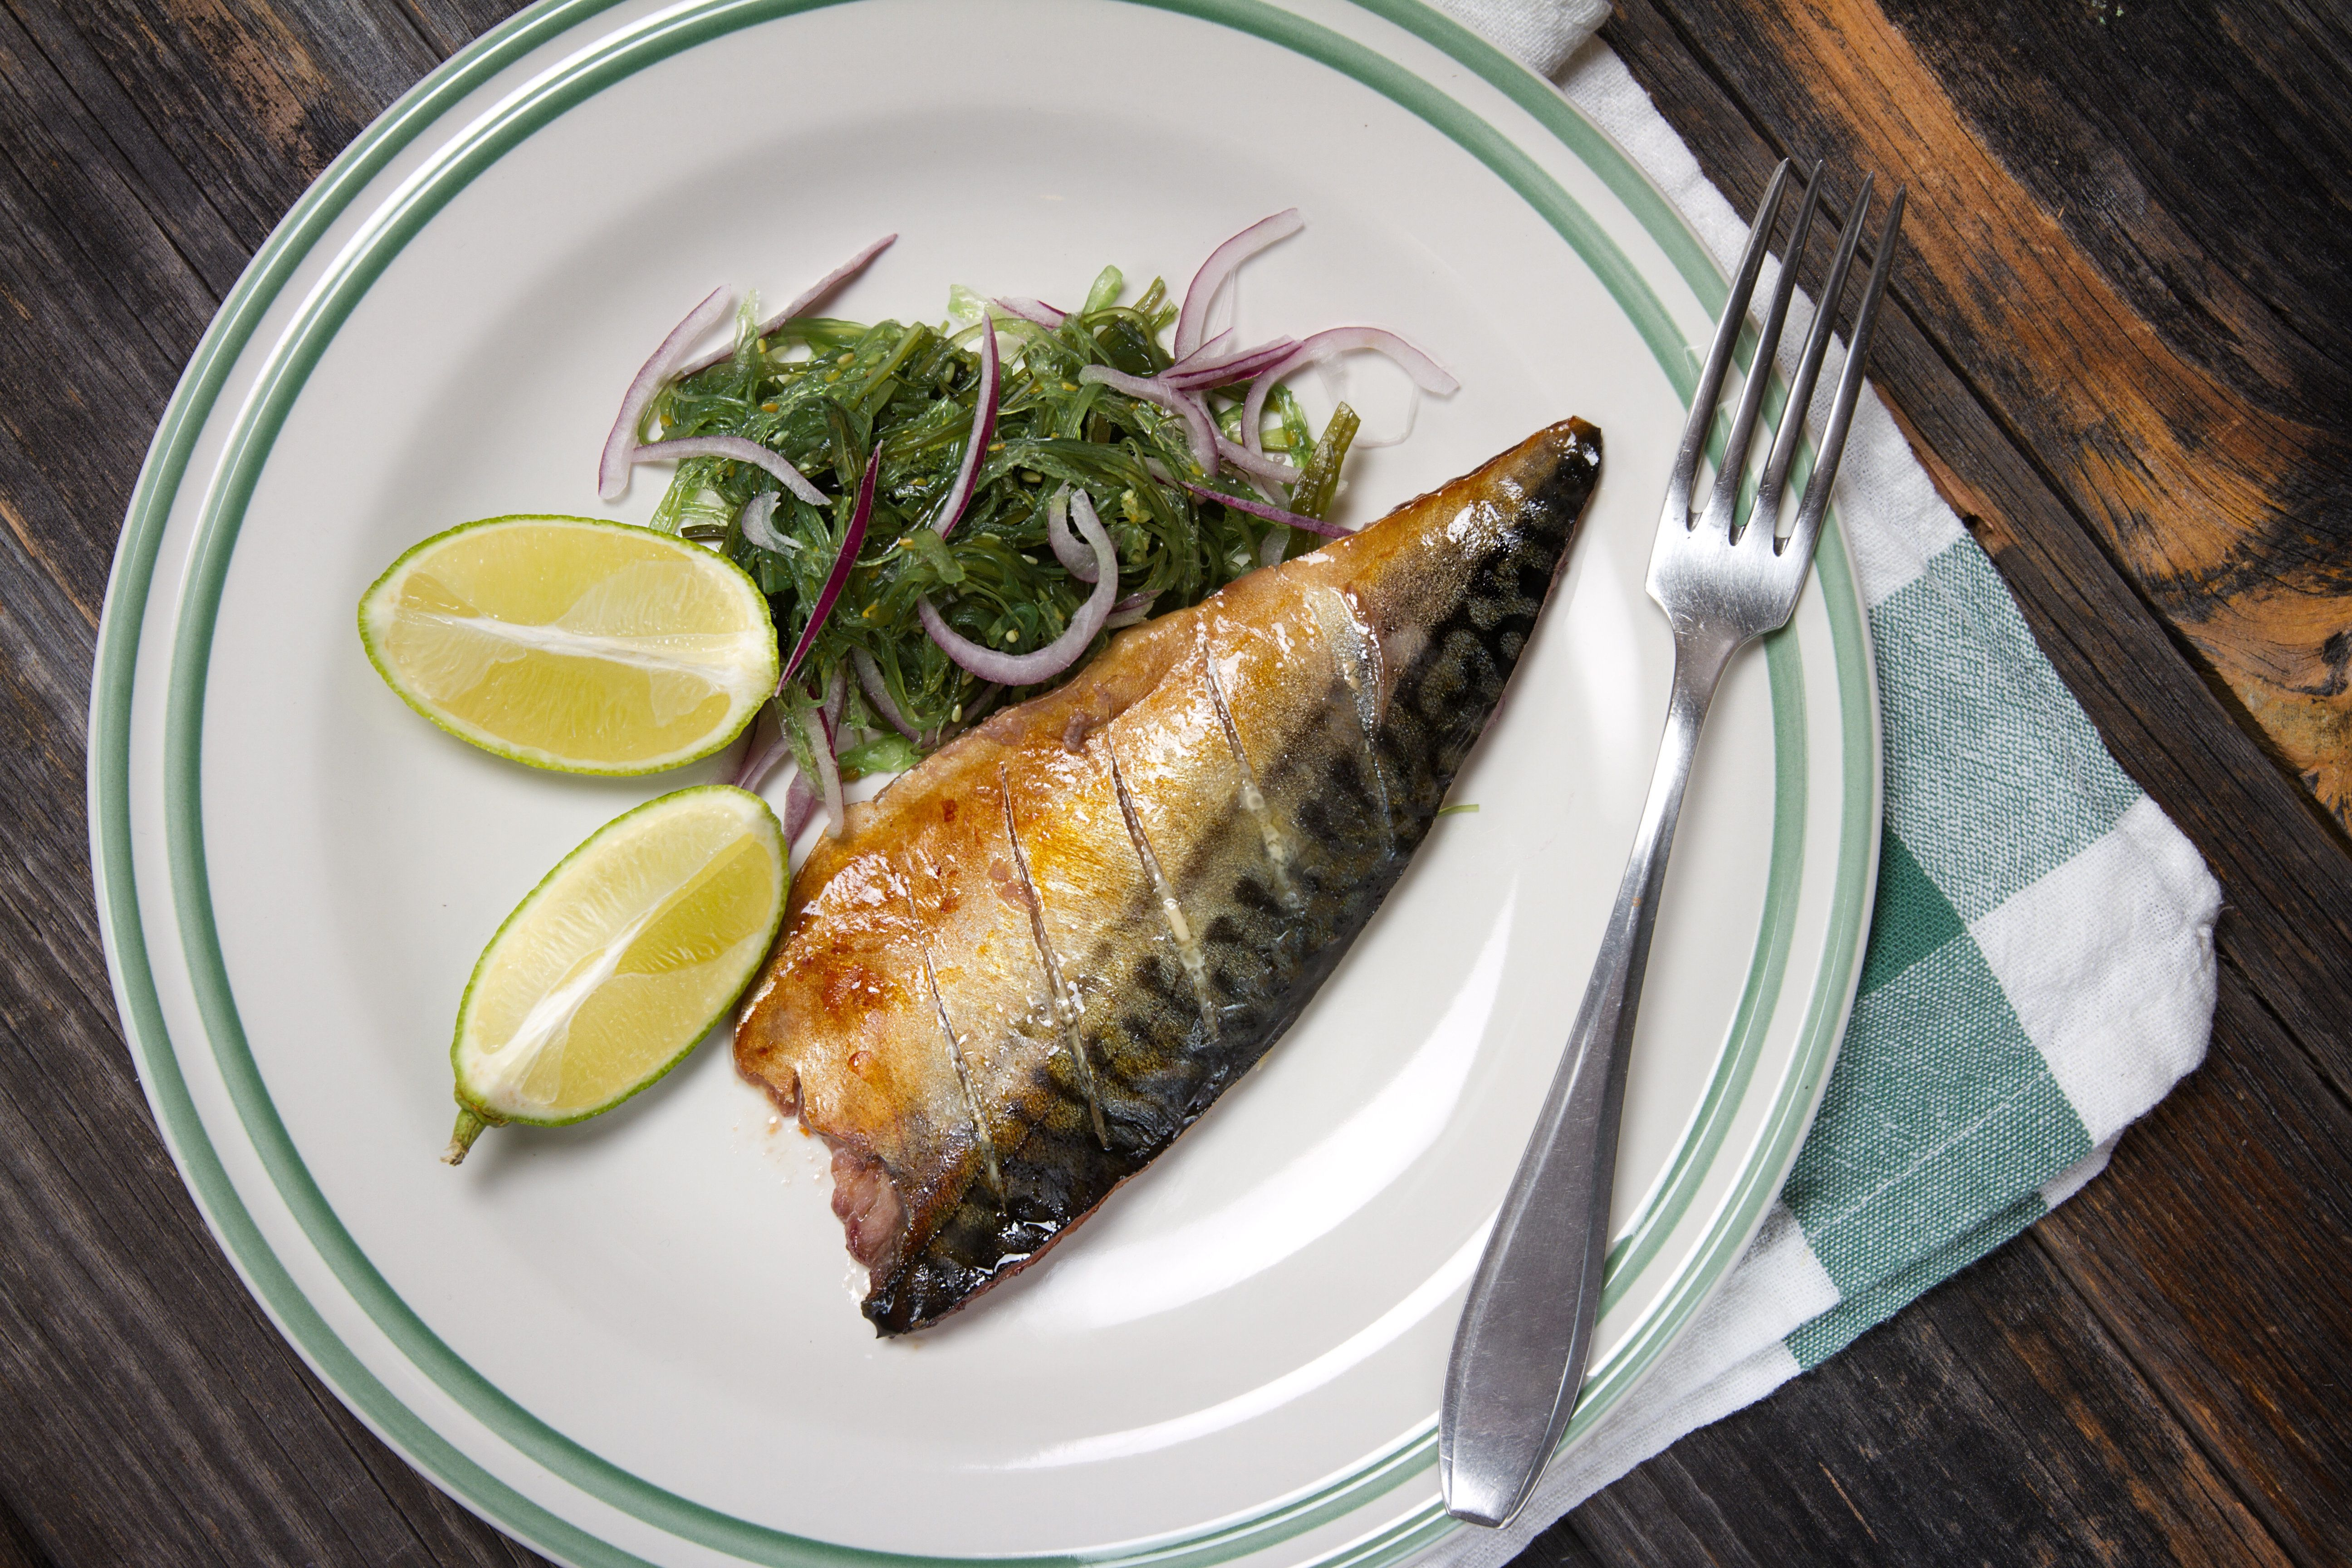 Oily fish could delay menopause while carbs may hasten it